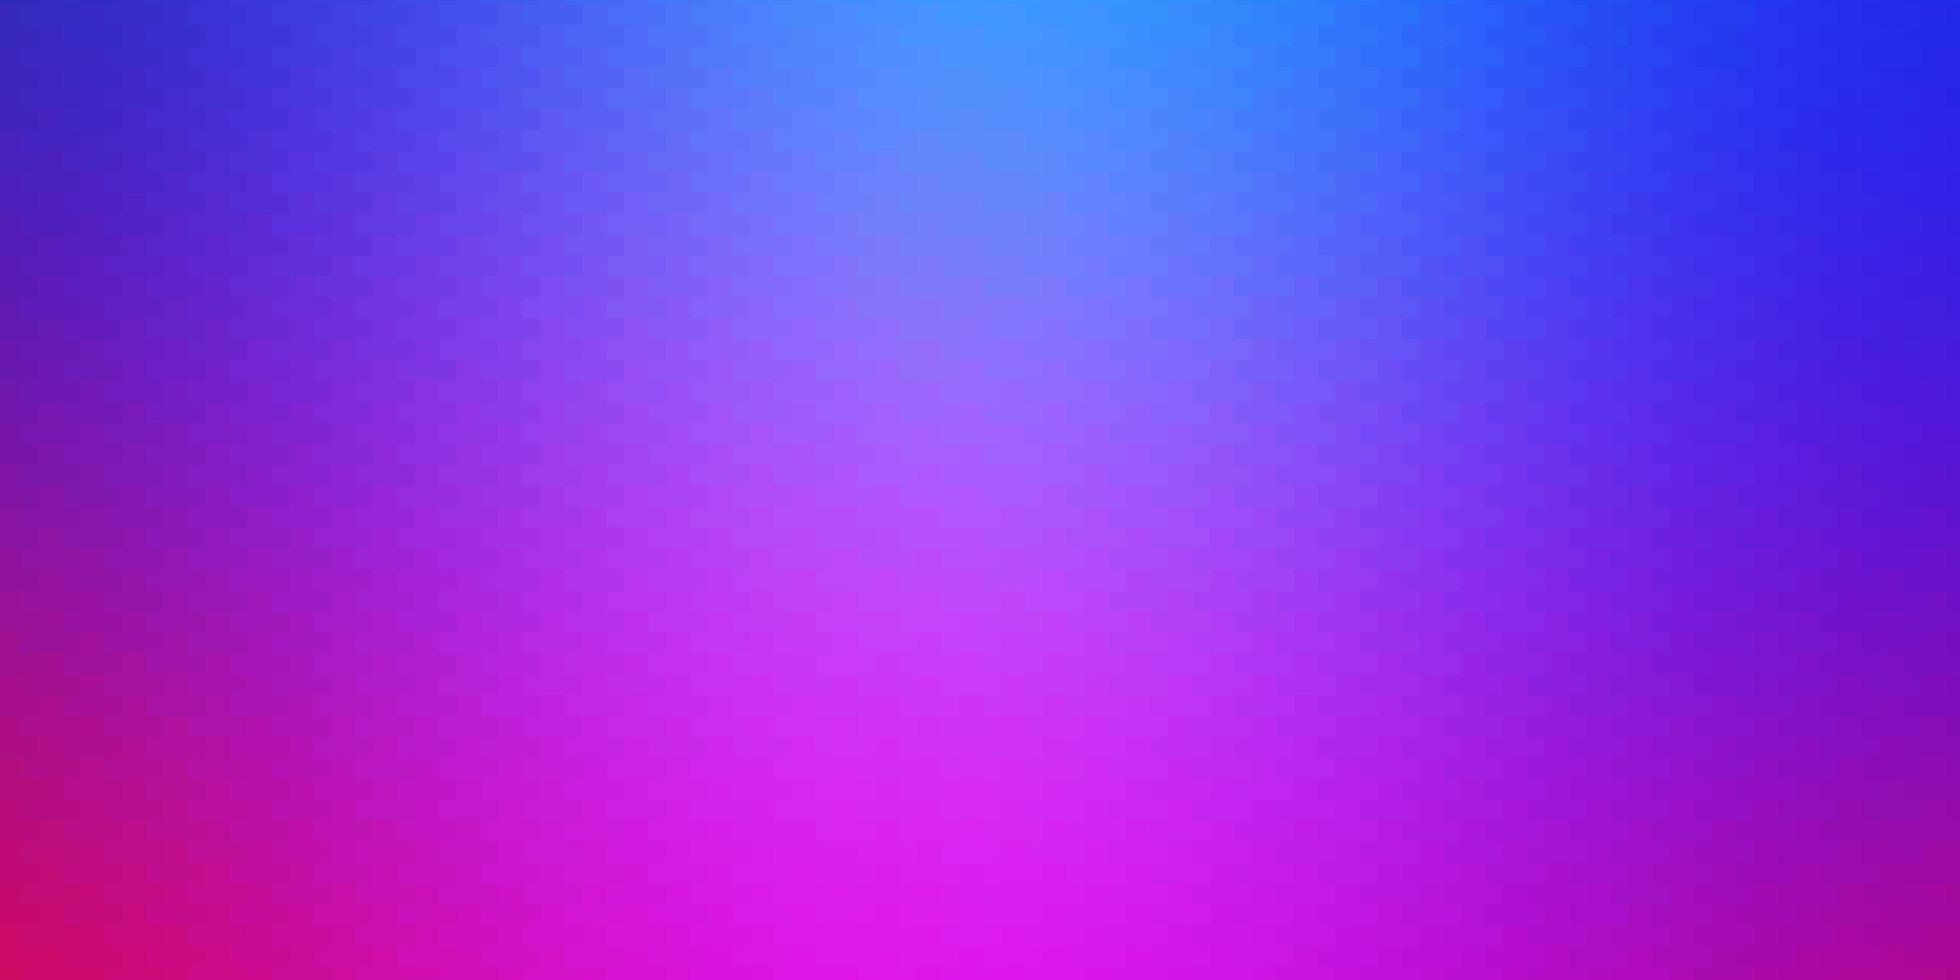 Light Pink, Blue background in polygonal style. vector